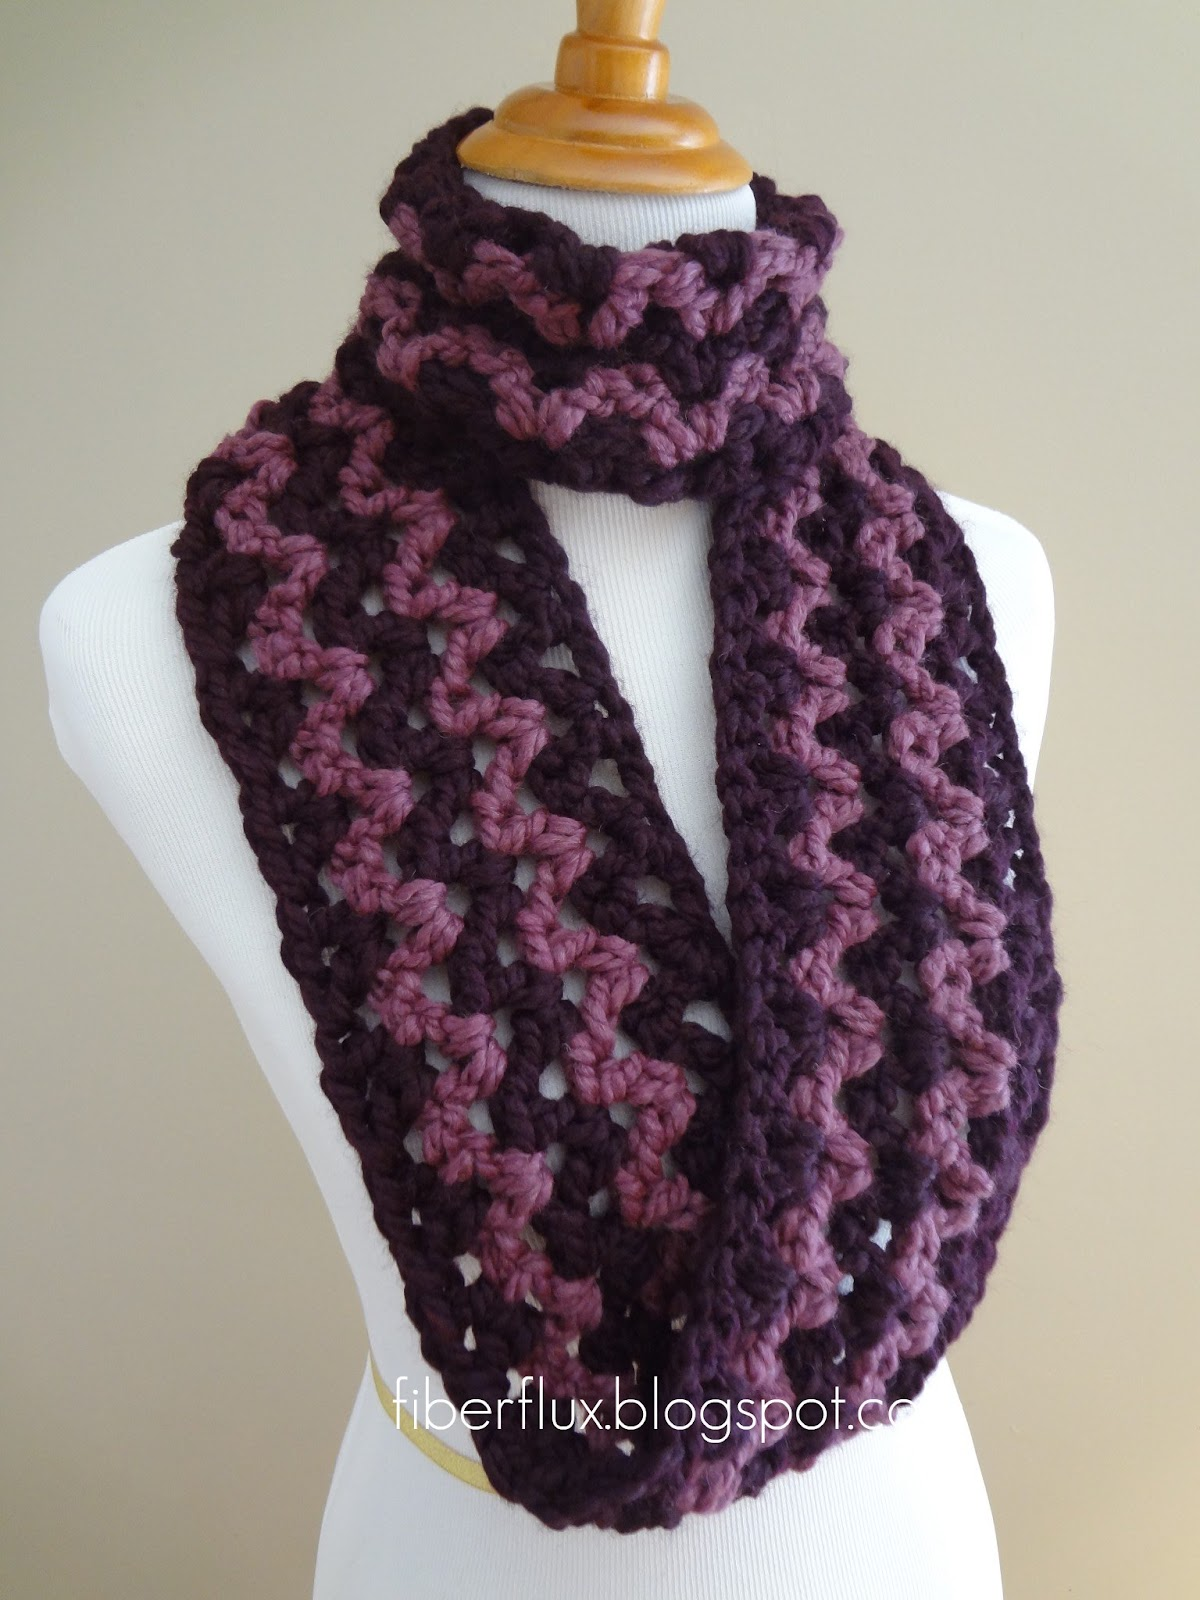 Free Patterns To And Crochet Infinity Scarf : Fiber Flux: Free Crochet Pattern...Pinot Noir Infinity Scarf